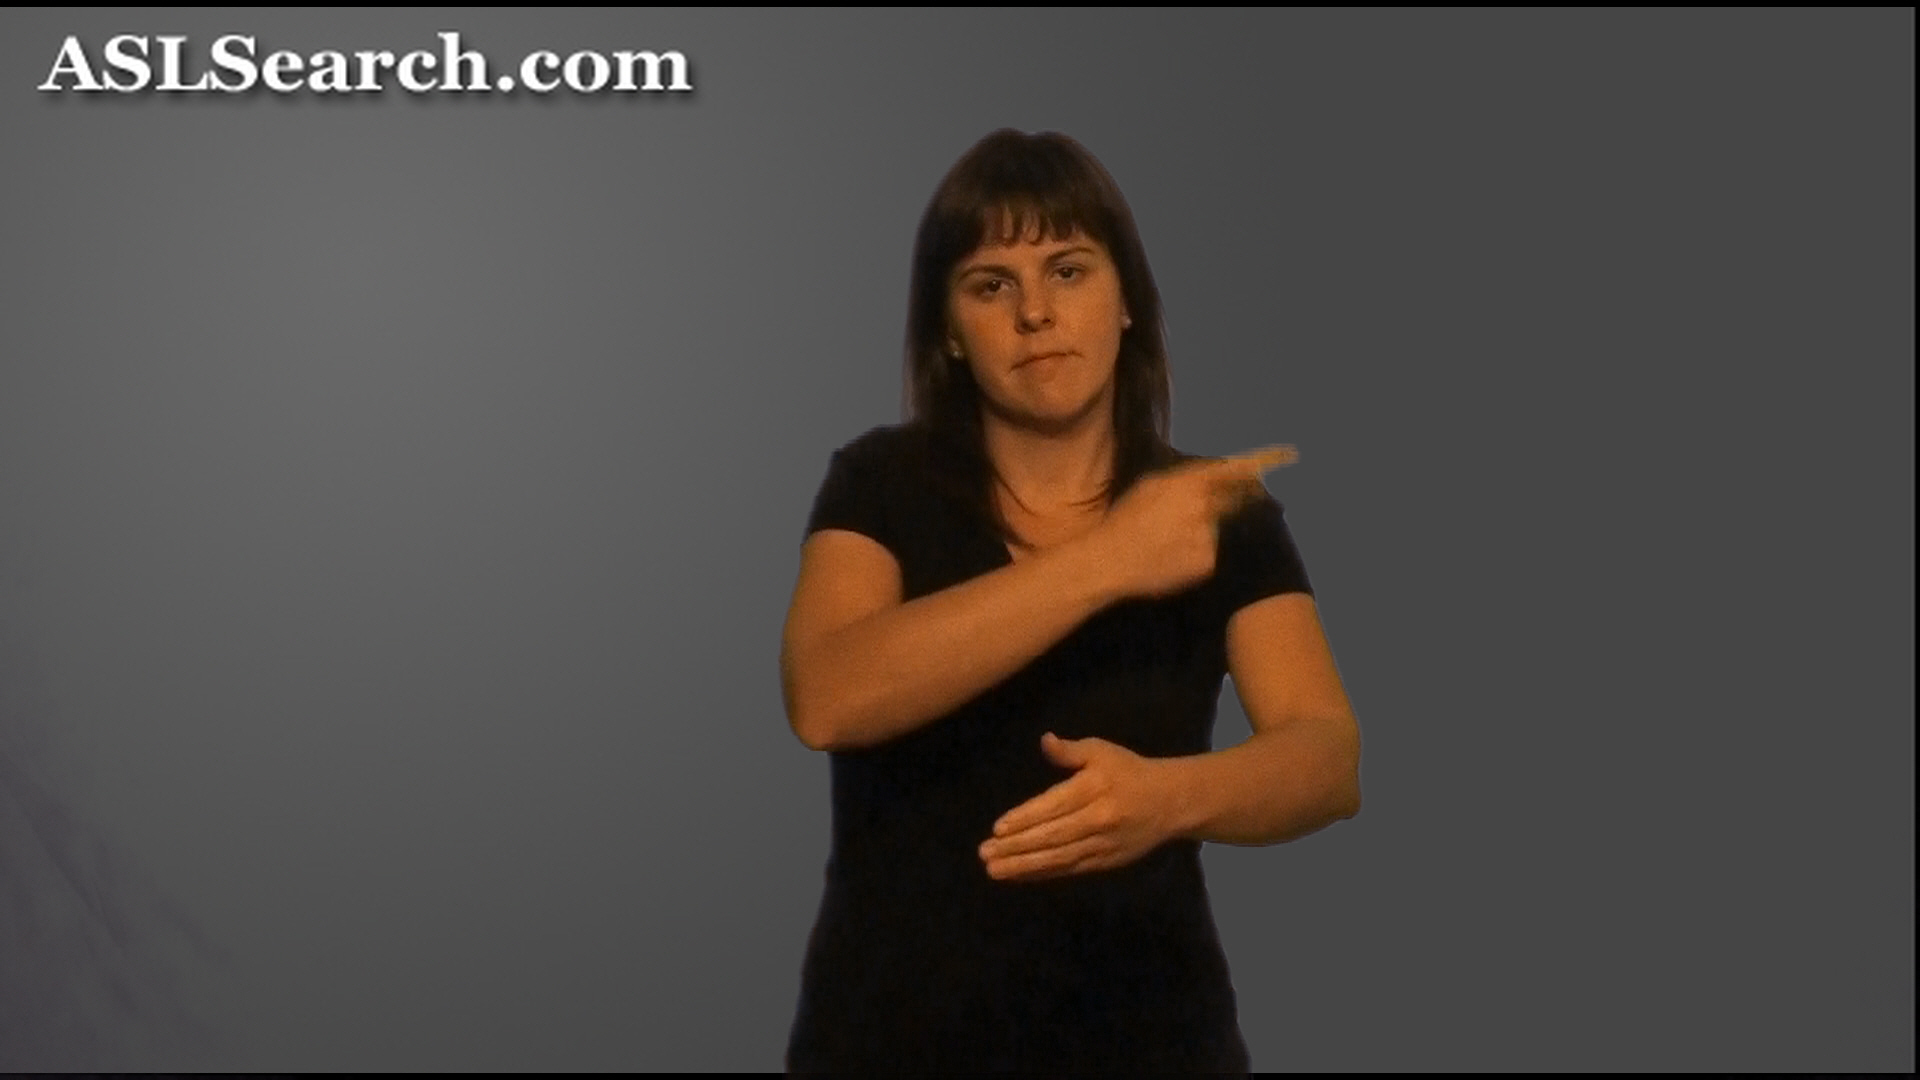 ASL for psalm